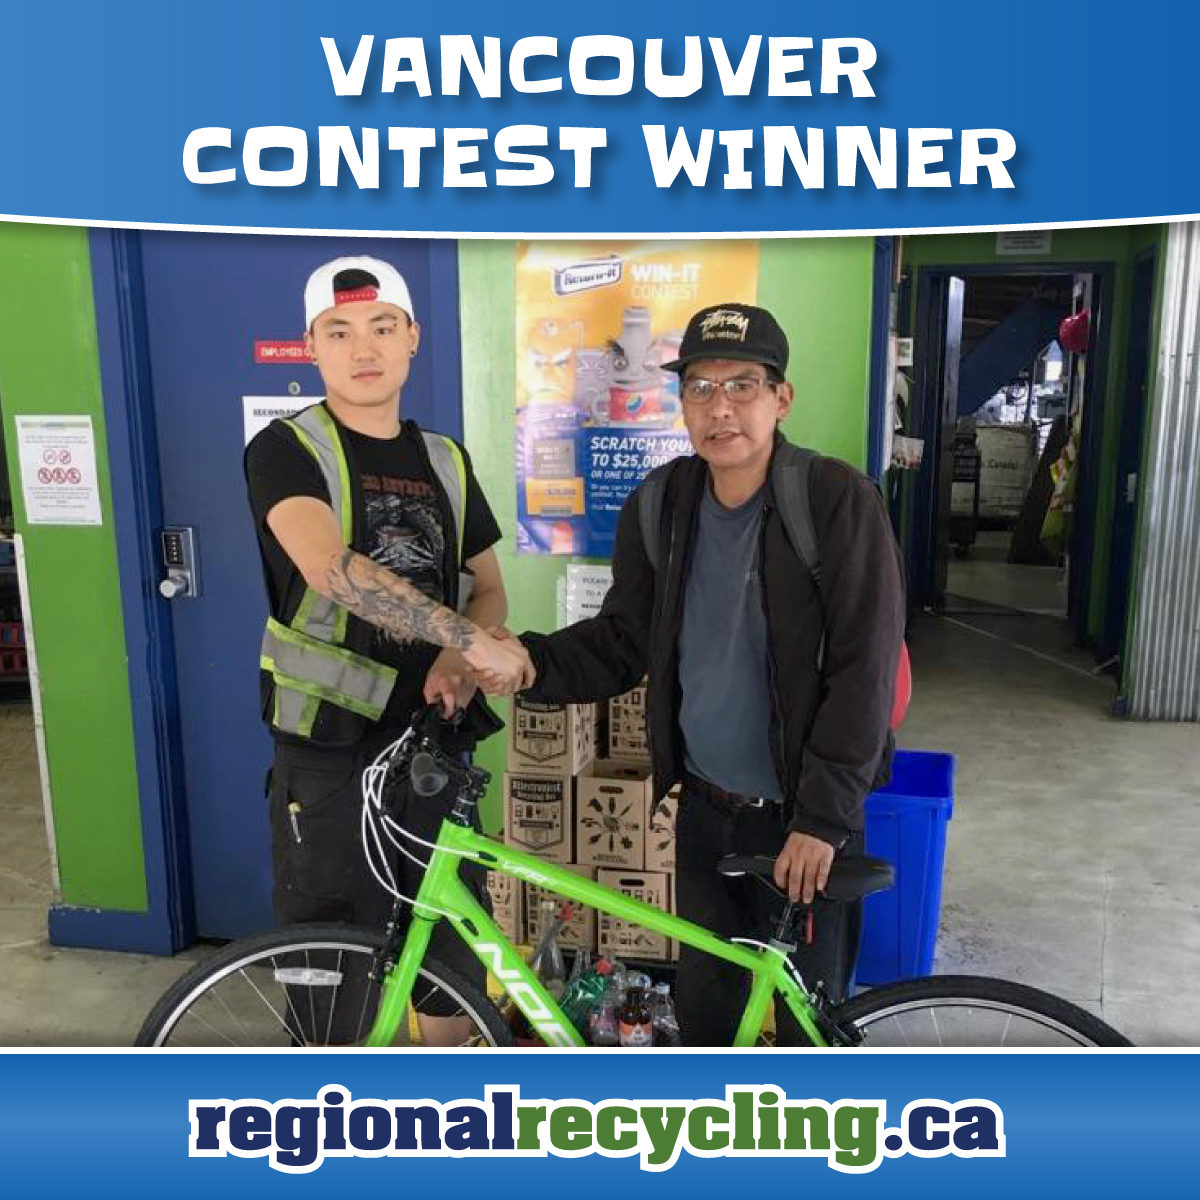 Vancouver Win a Bike Winner | Regional Recycling